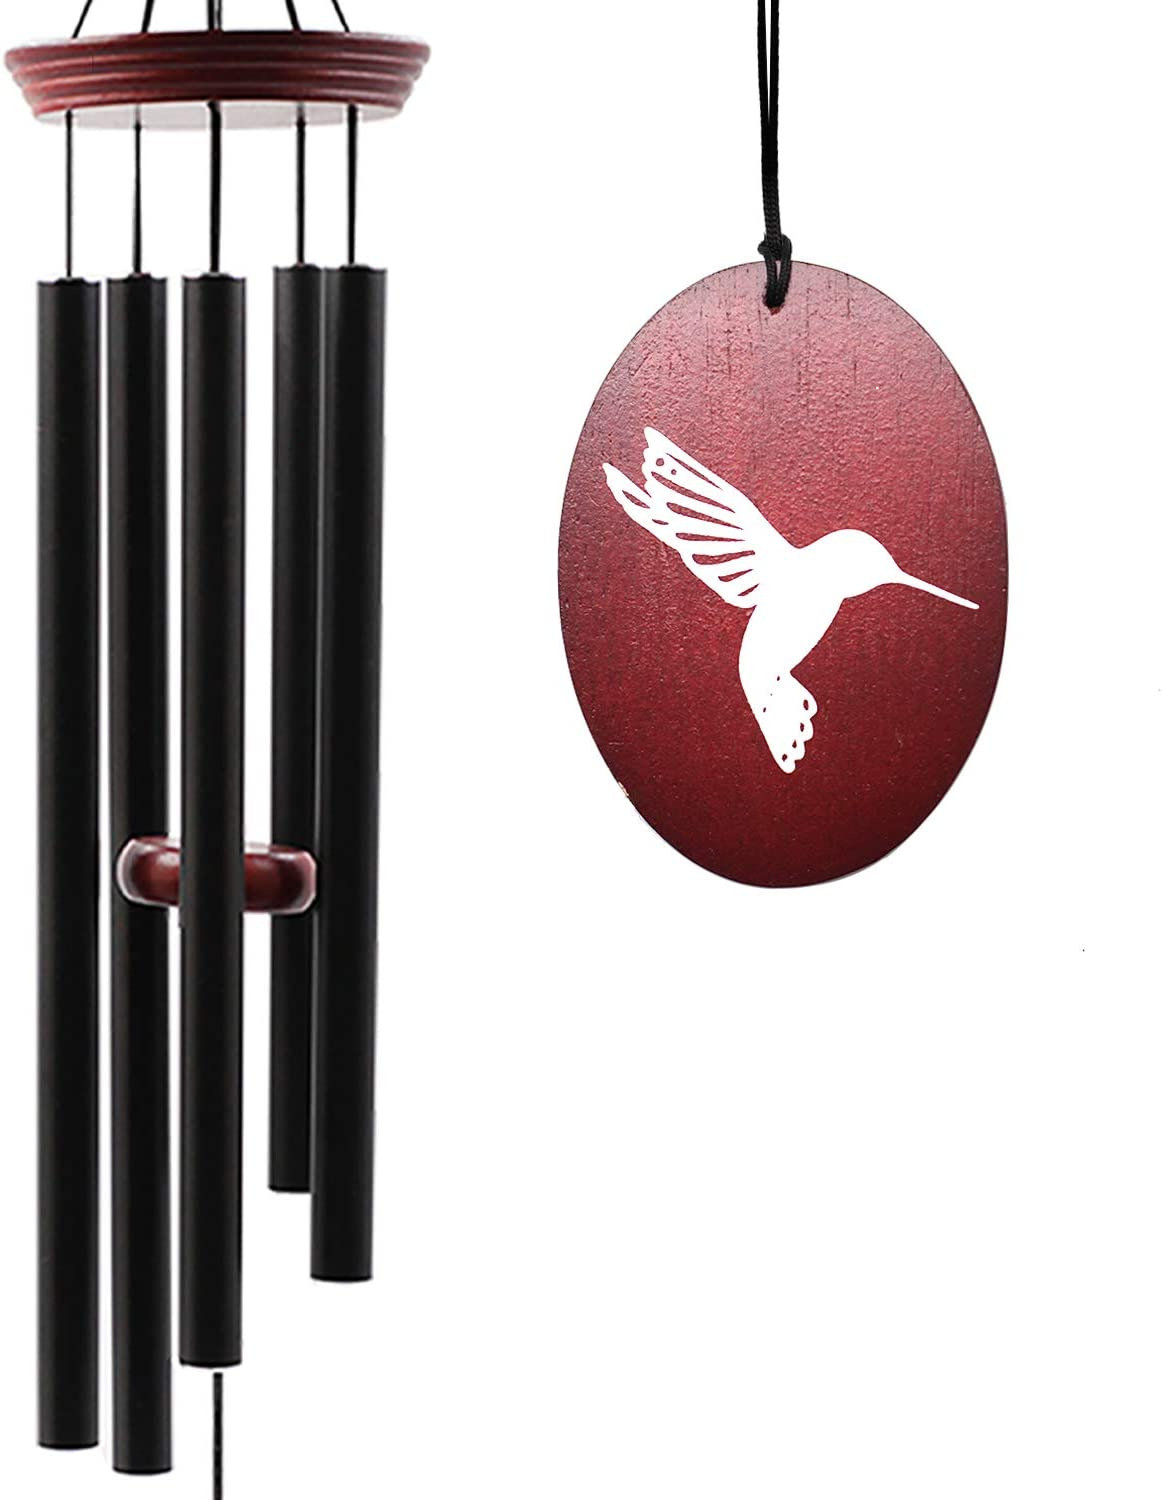 Wind Chimes for Outside, Wind Chimes Outdoor Tuned Soothing Melody, Memorial Wind Chimes Gifts for Mom/Grandma, Hummingbird Wind Chimes Outdoor Decoration, Patio, Garden, Yard. : Everything Else